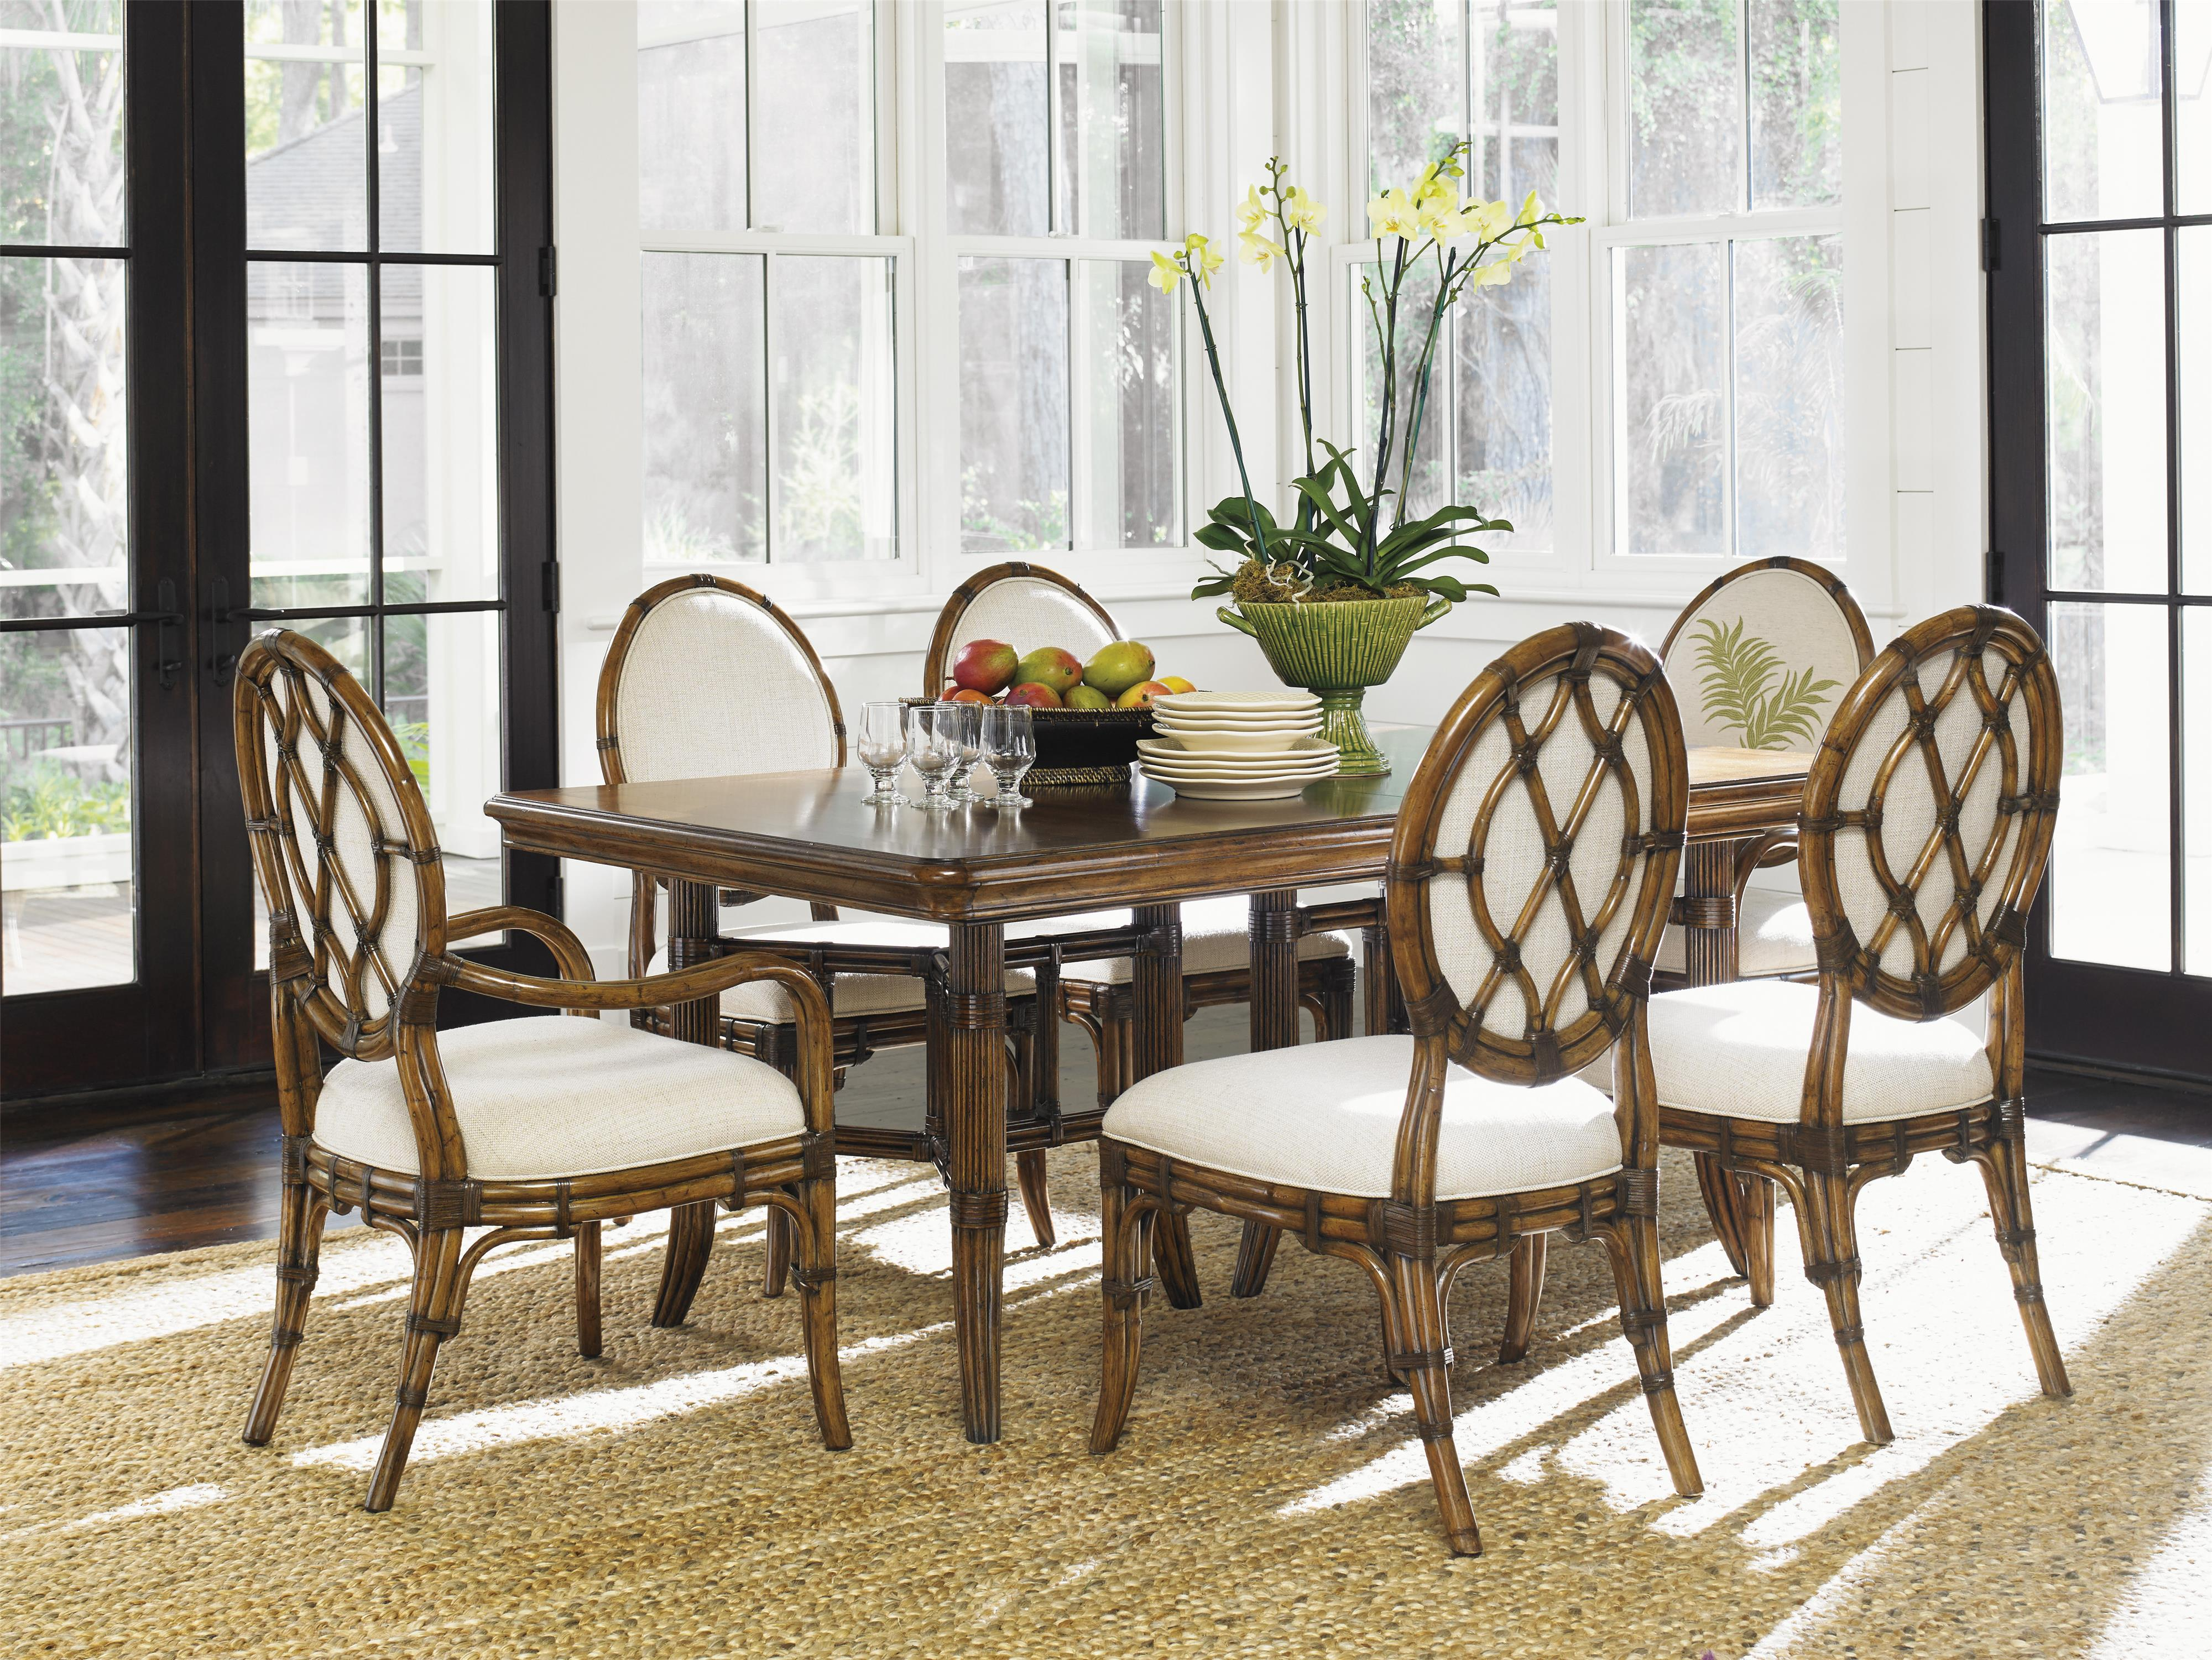 Bali Hai 7 Piece Dining Set by Tommy Bahama Home at Baer's Furniture